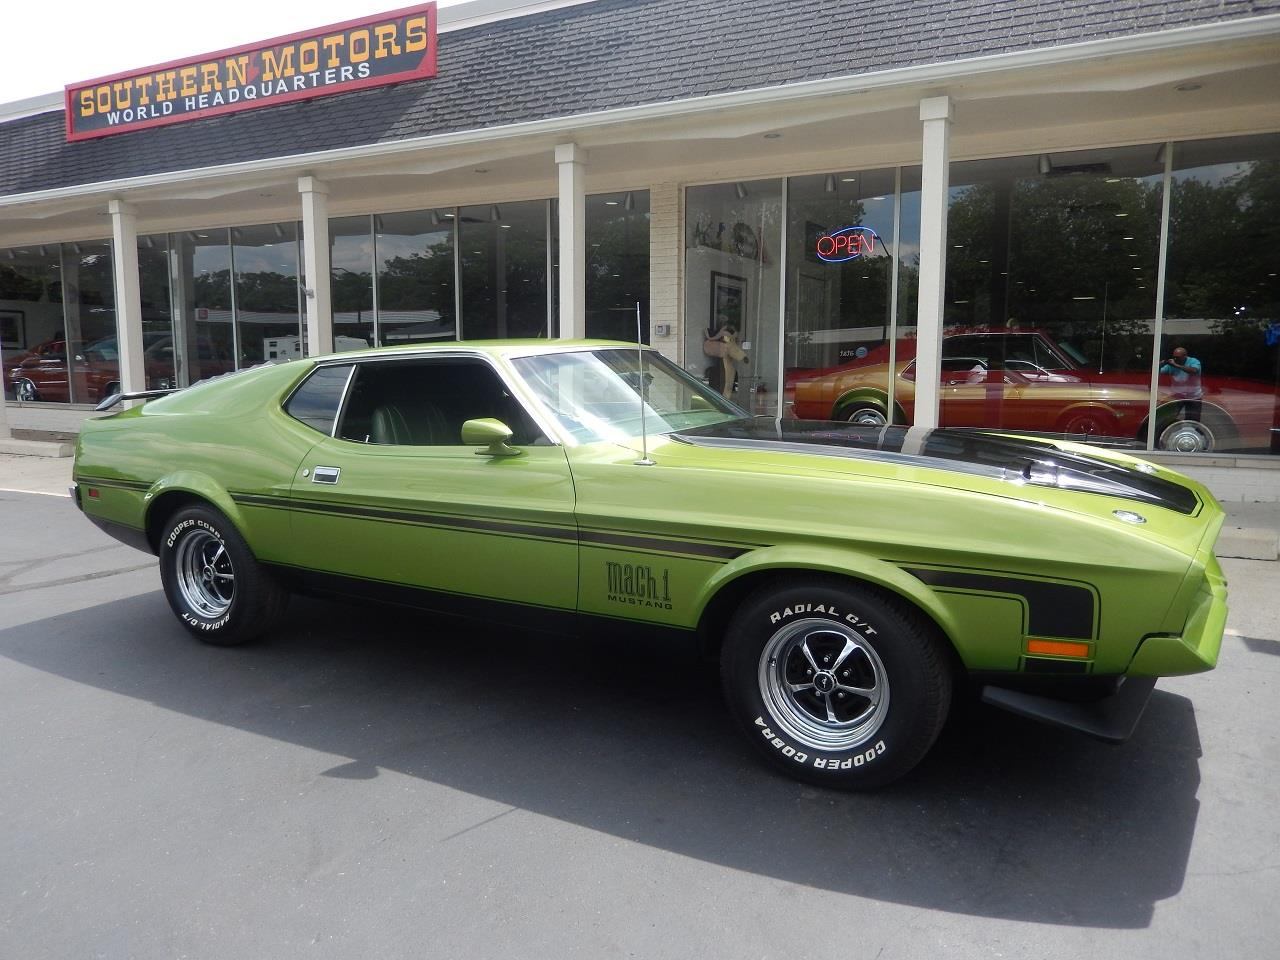 Large picture of 72 mustang mach 1 lxko